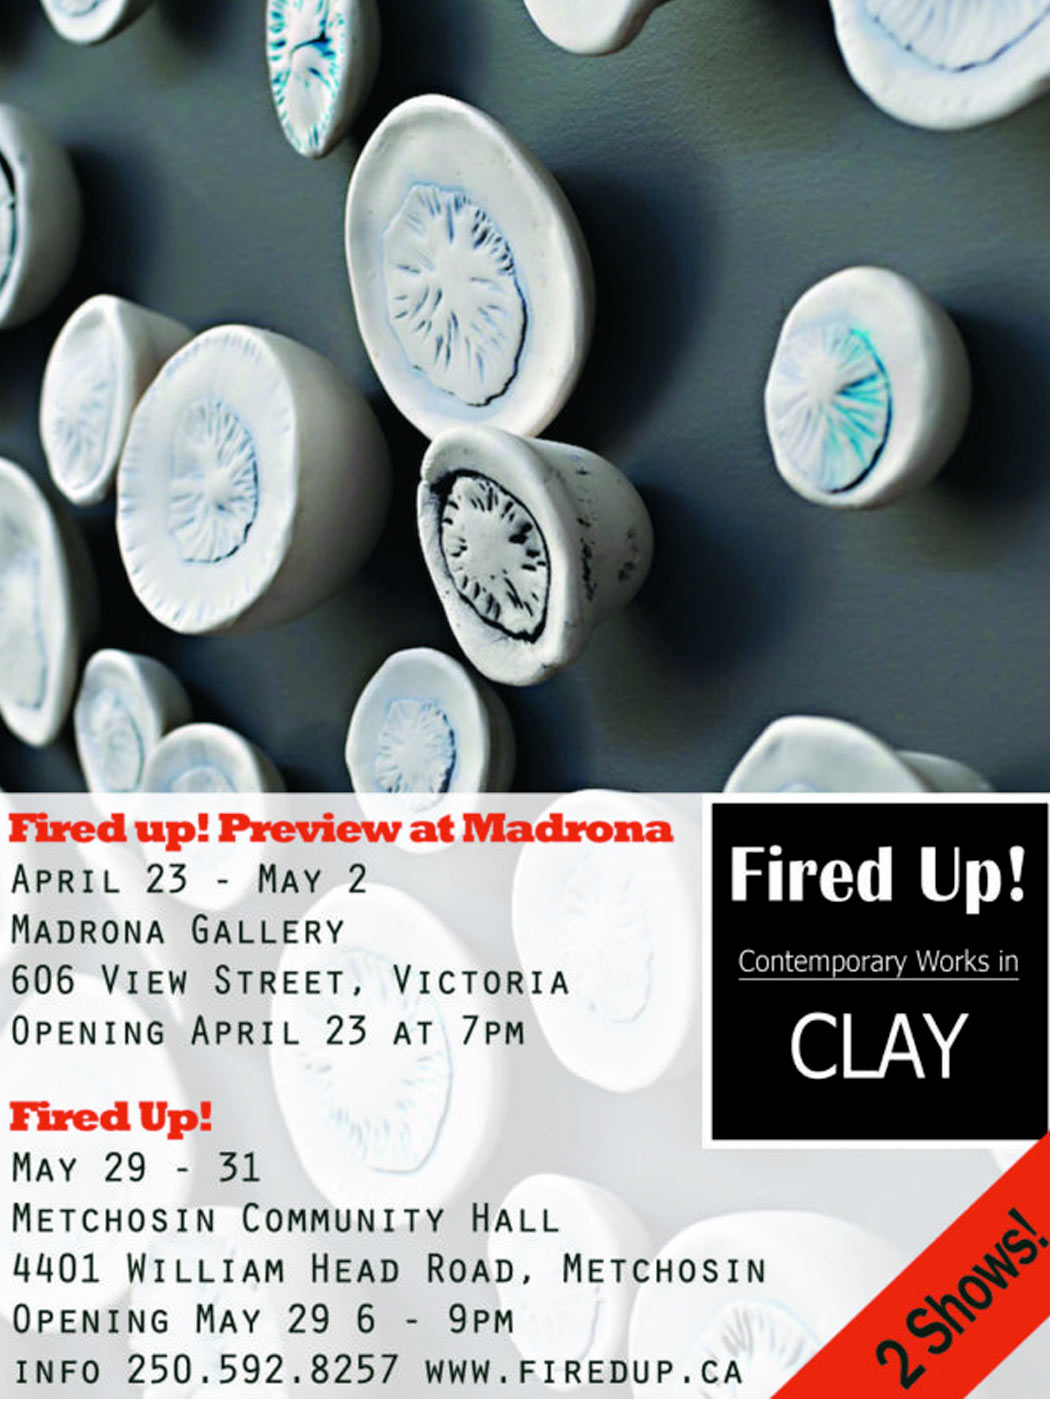 Fired Up! Exhibition at Madrona Gallery, Victoria BC